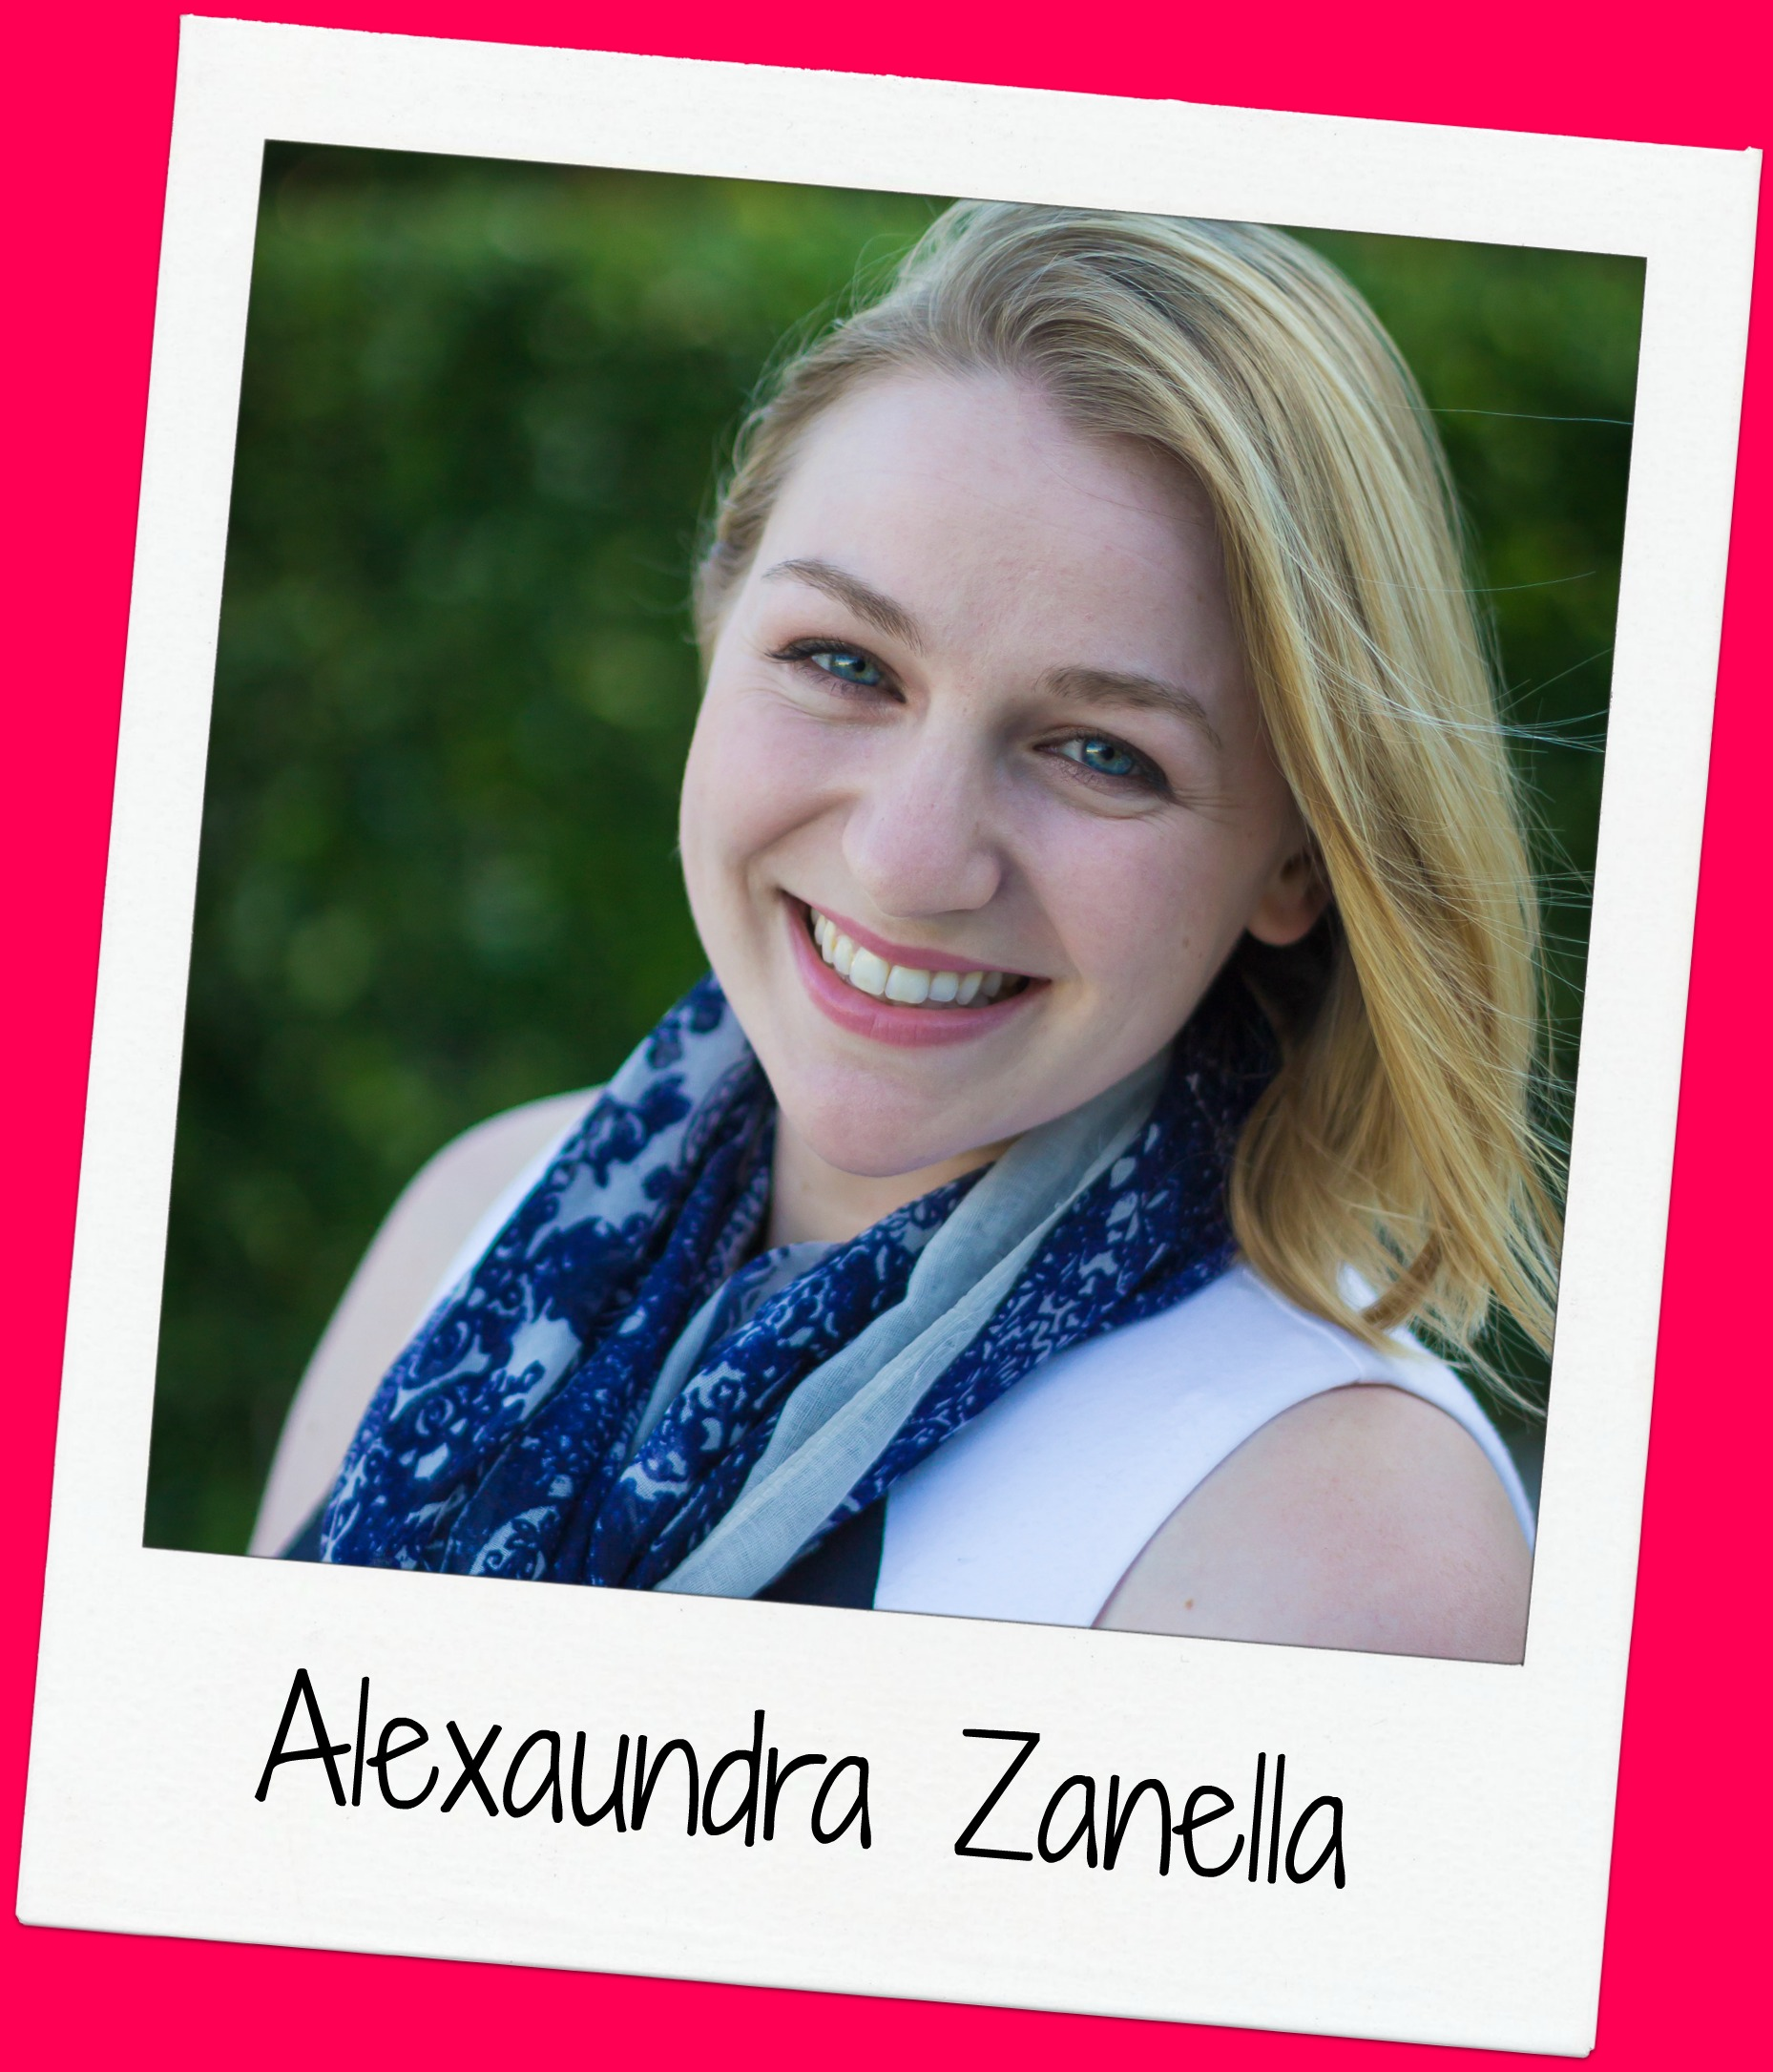 Having grown up wanting to be Indiana Jones, Alexaundra loves to find new ways to combine her passions for science, history, languages and world travel. She has a Master degree in European Studies and co-taught an after school science program.